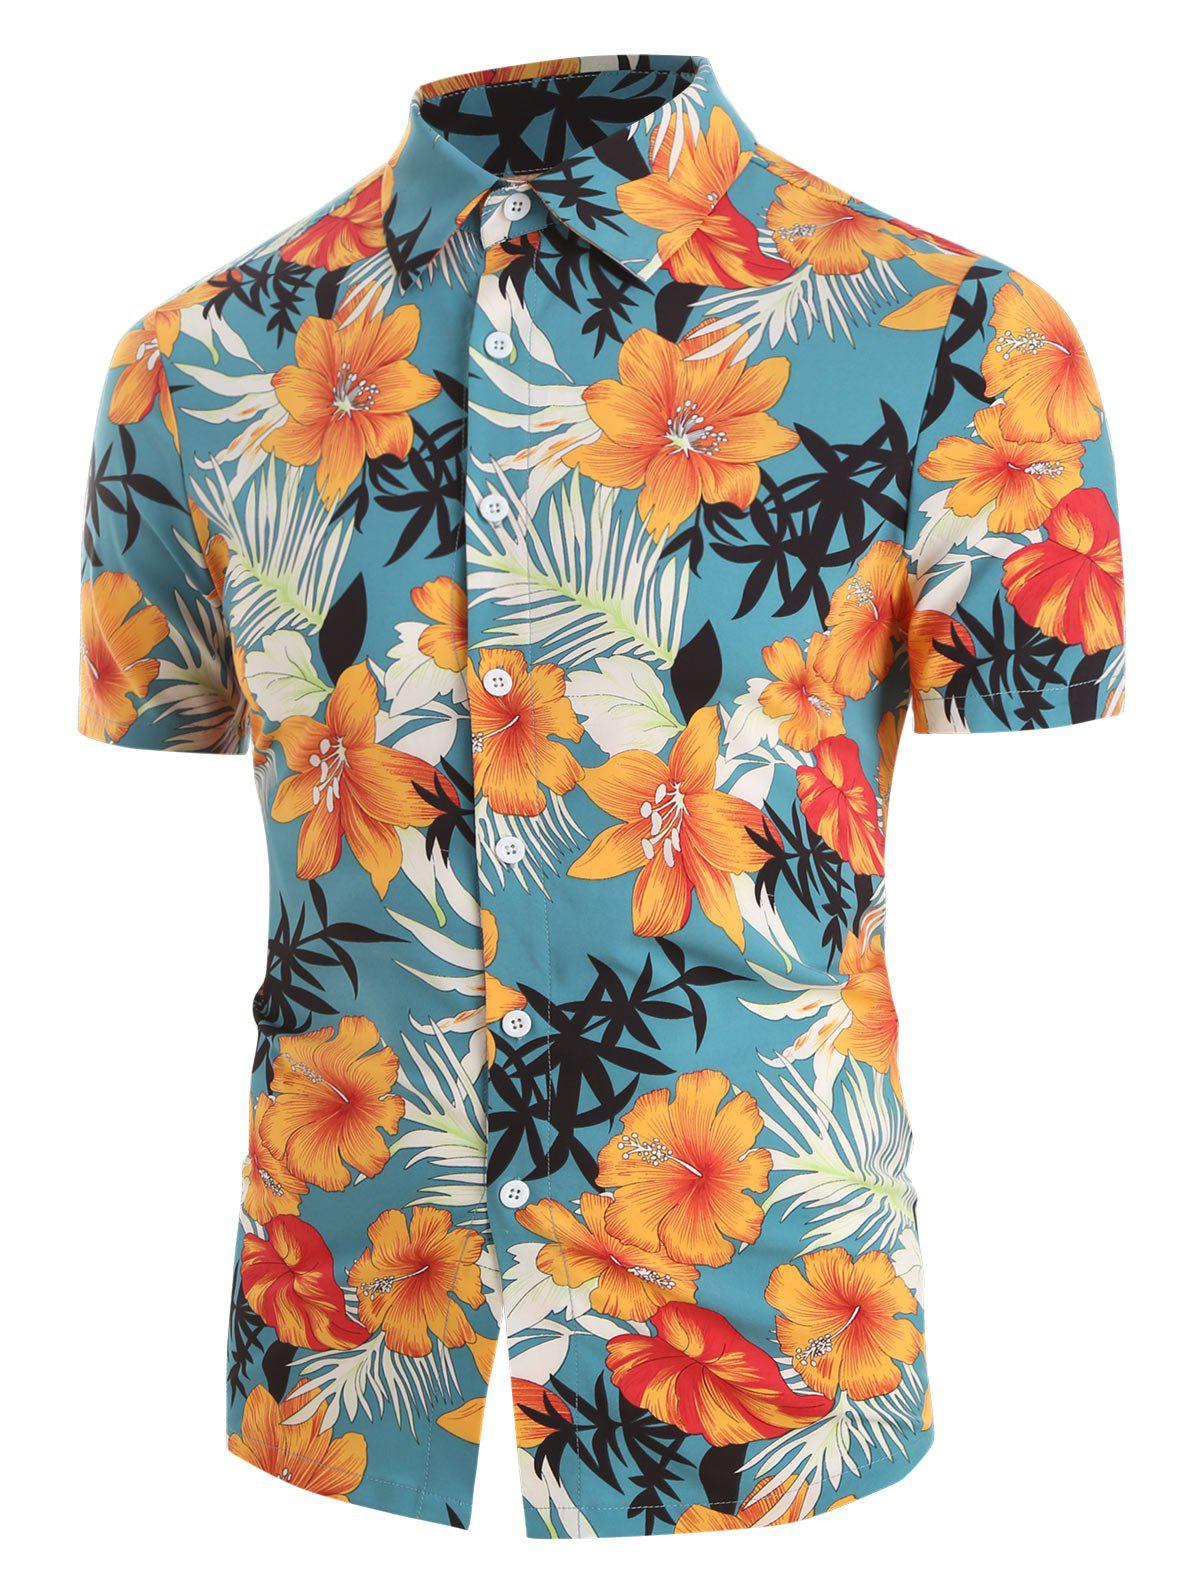 Tropical Flowers and Leaf Print Button Up Shirt - multicolor A L